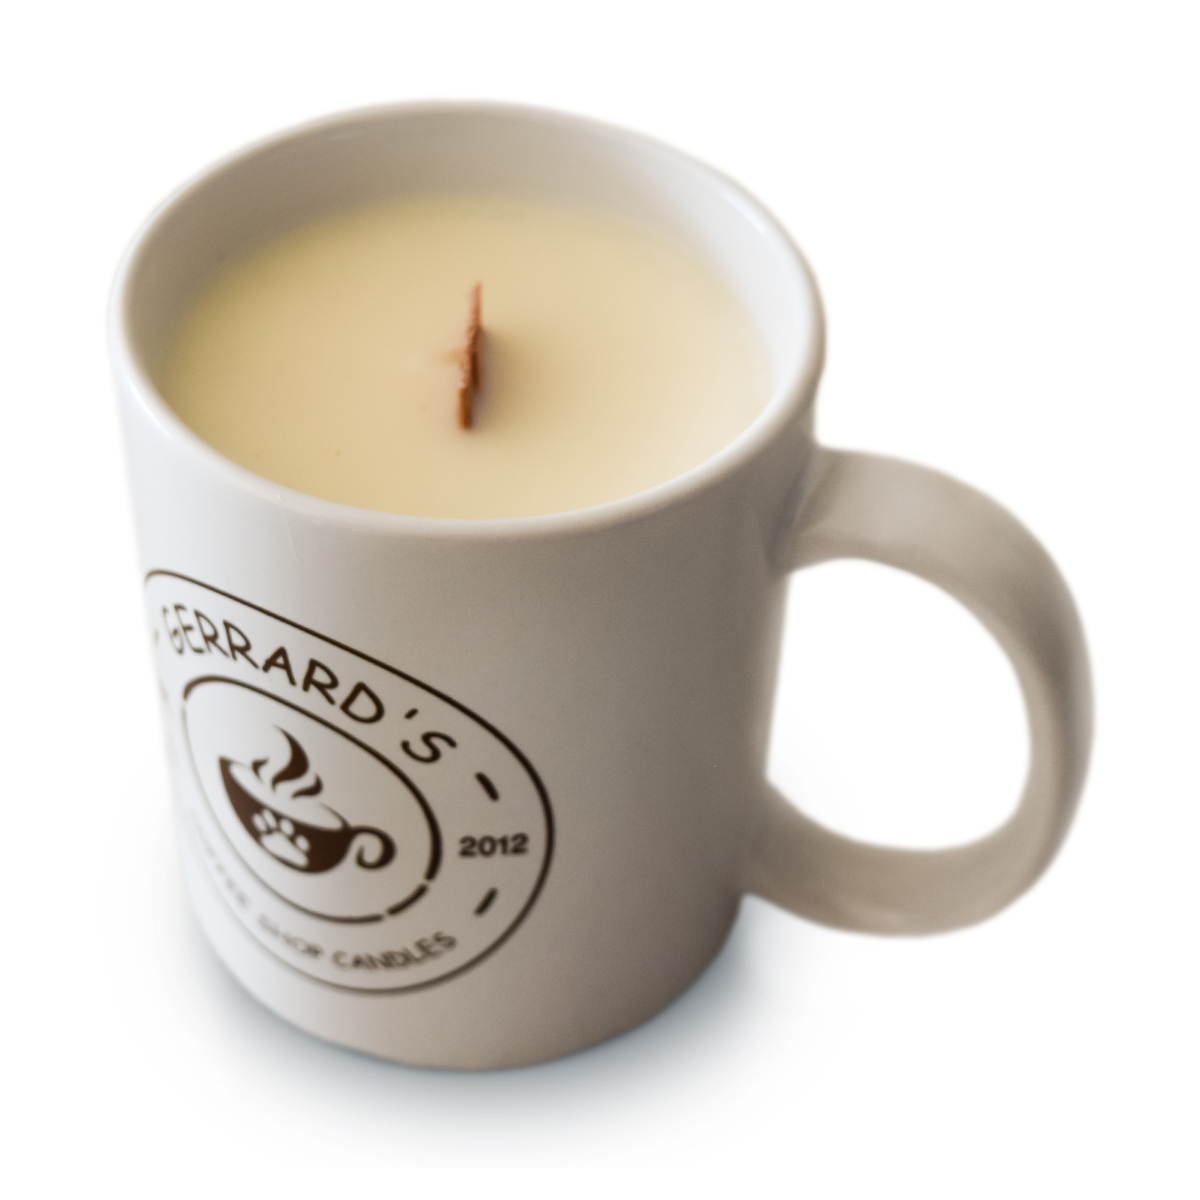 Gerrard's Coffee Shop Candle, $20